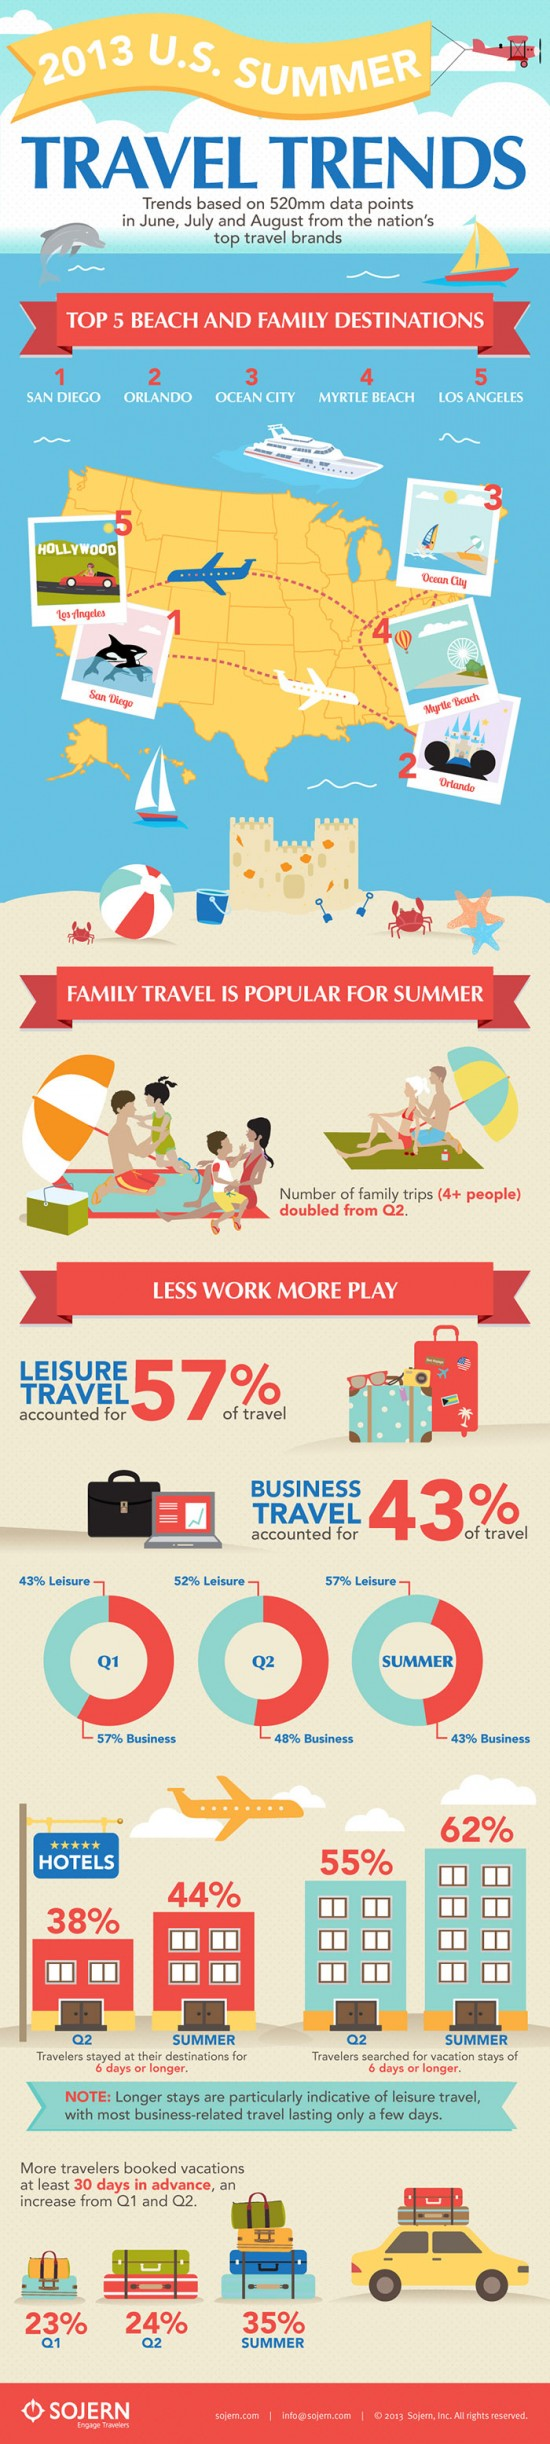 SummerTravelTrends_Infographic_Sojern_090513-e1379027334827